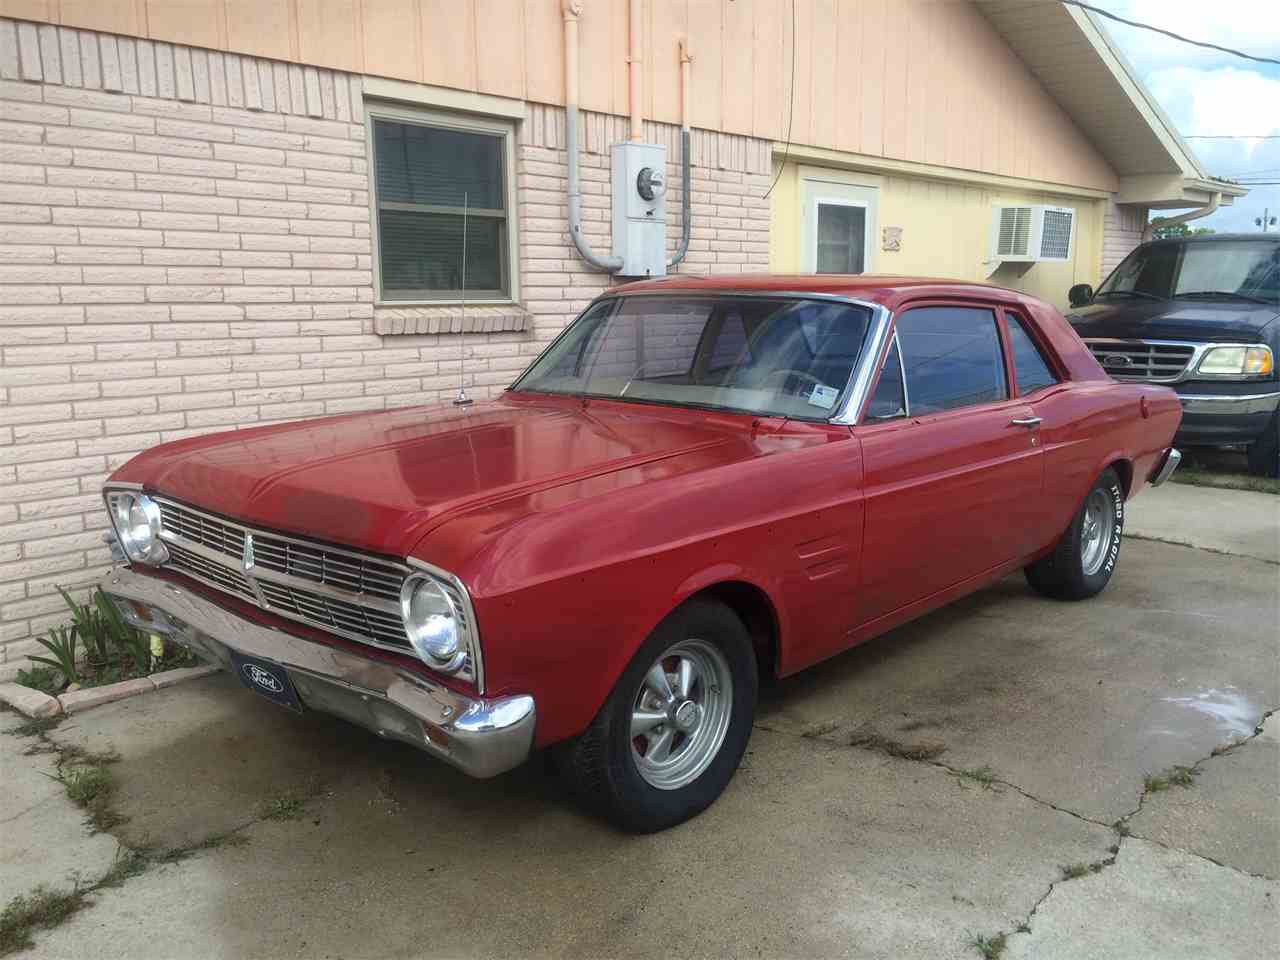 1967 Ford Falcon Futura for Sale | ClassicCars.com | CC-856982